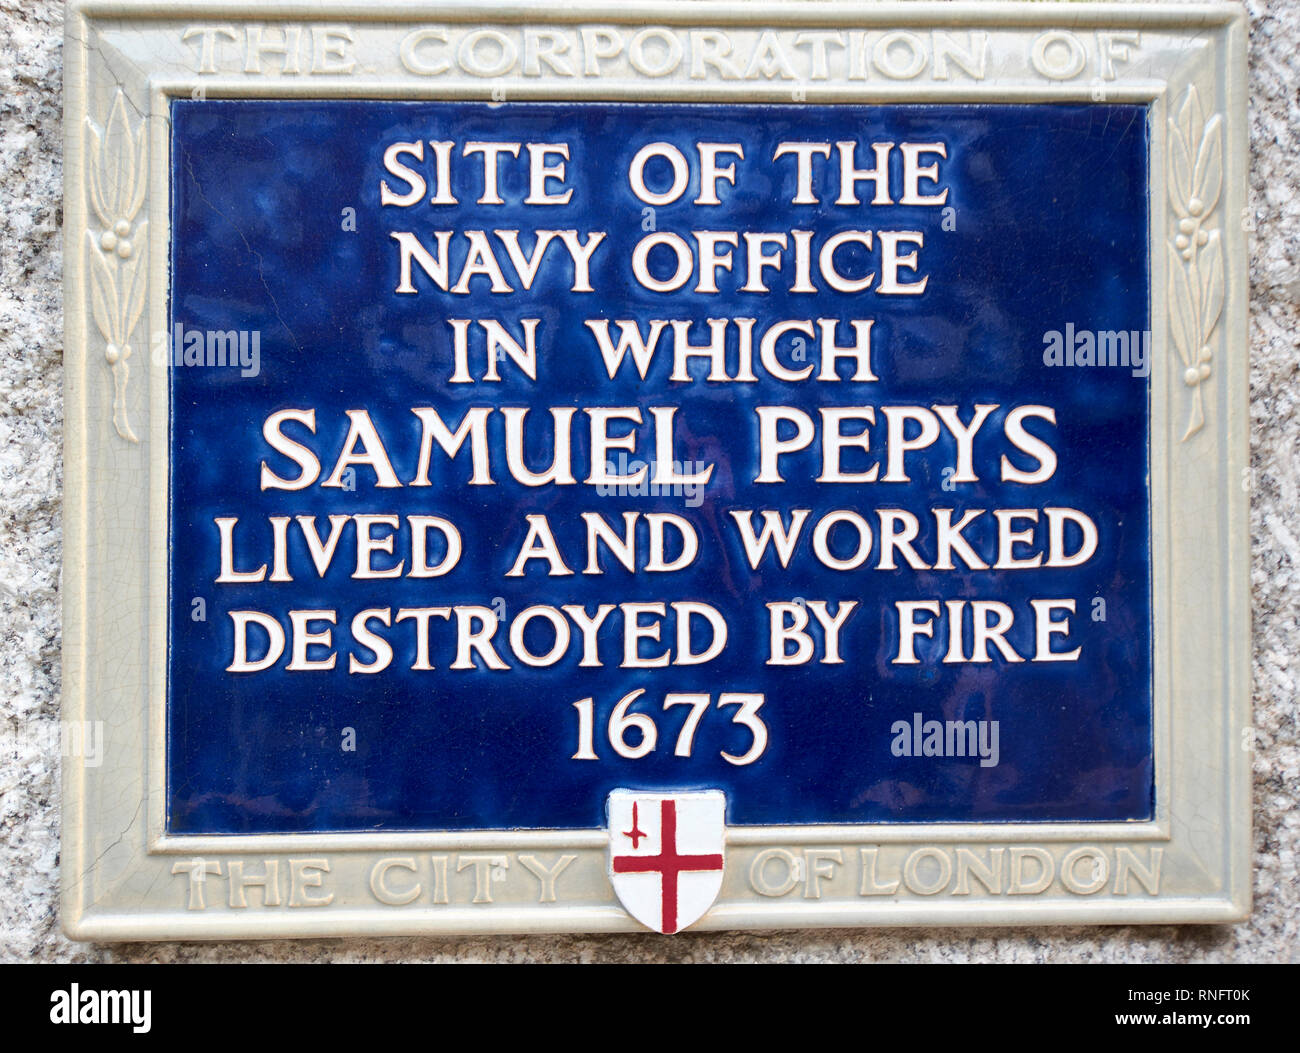 LONDON PLAQUE OR SIGN INDICATING SITE WHERE PEPYS LIVED AND WORKED - Stock Image